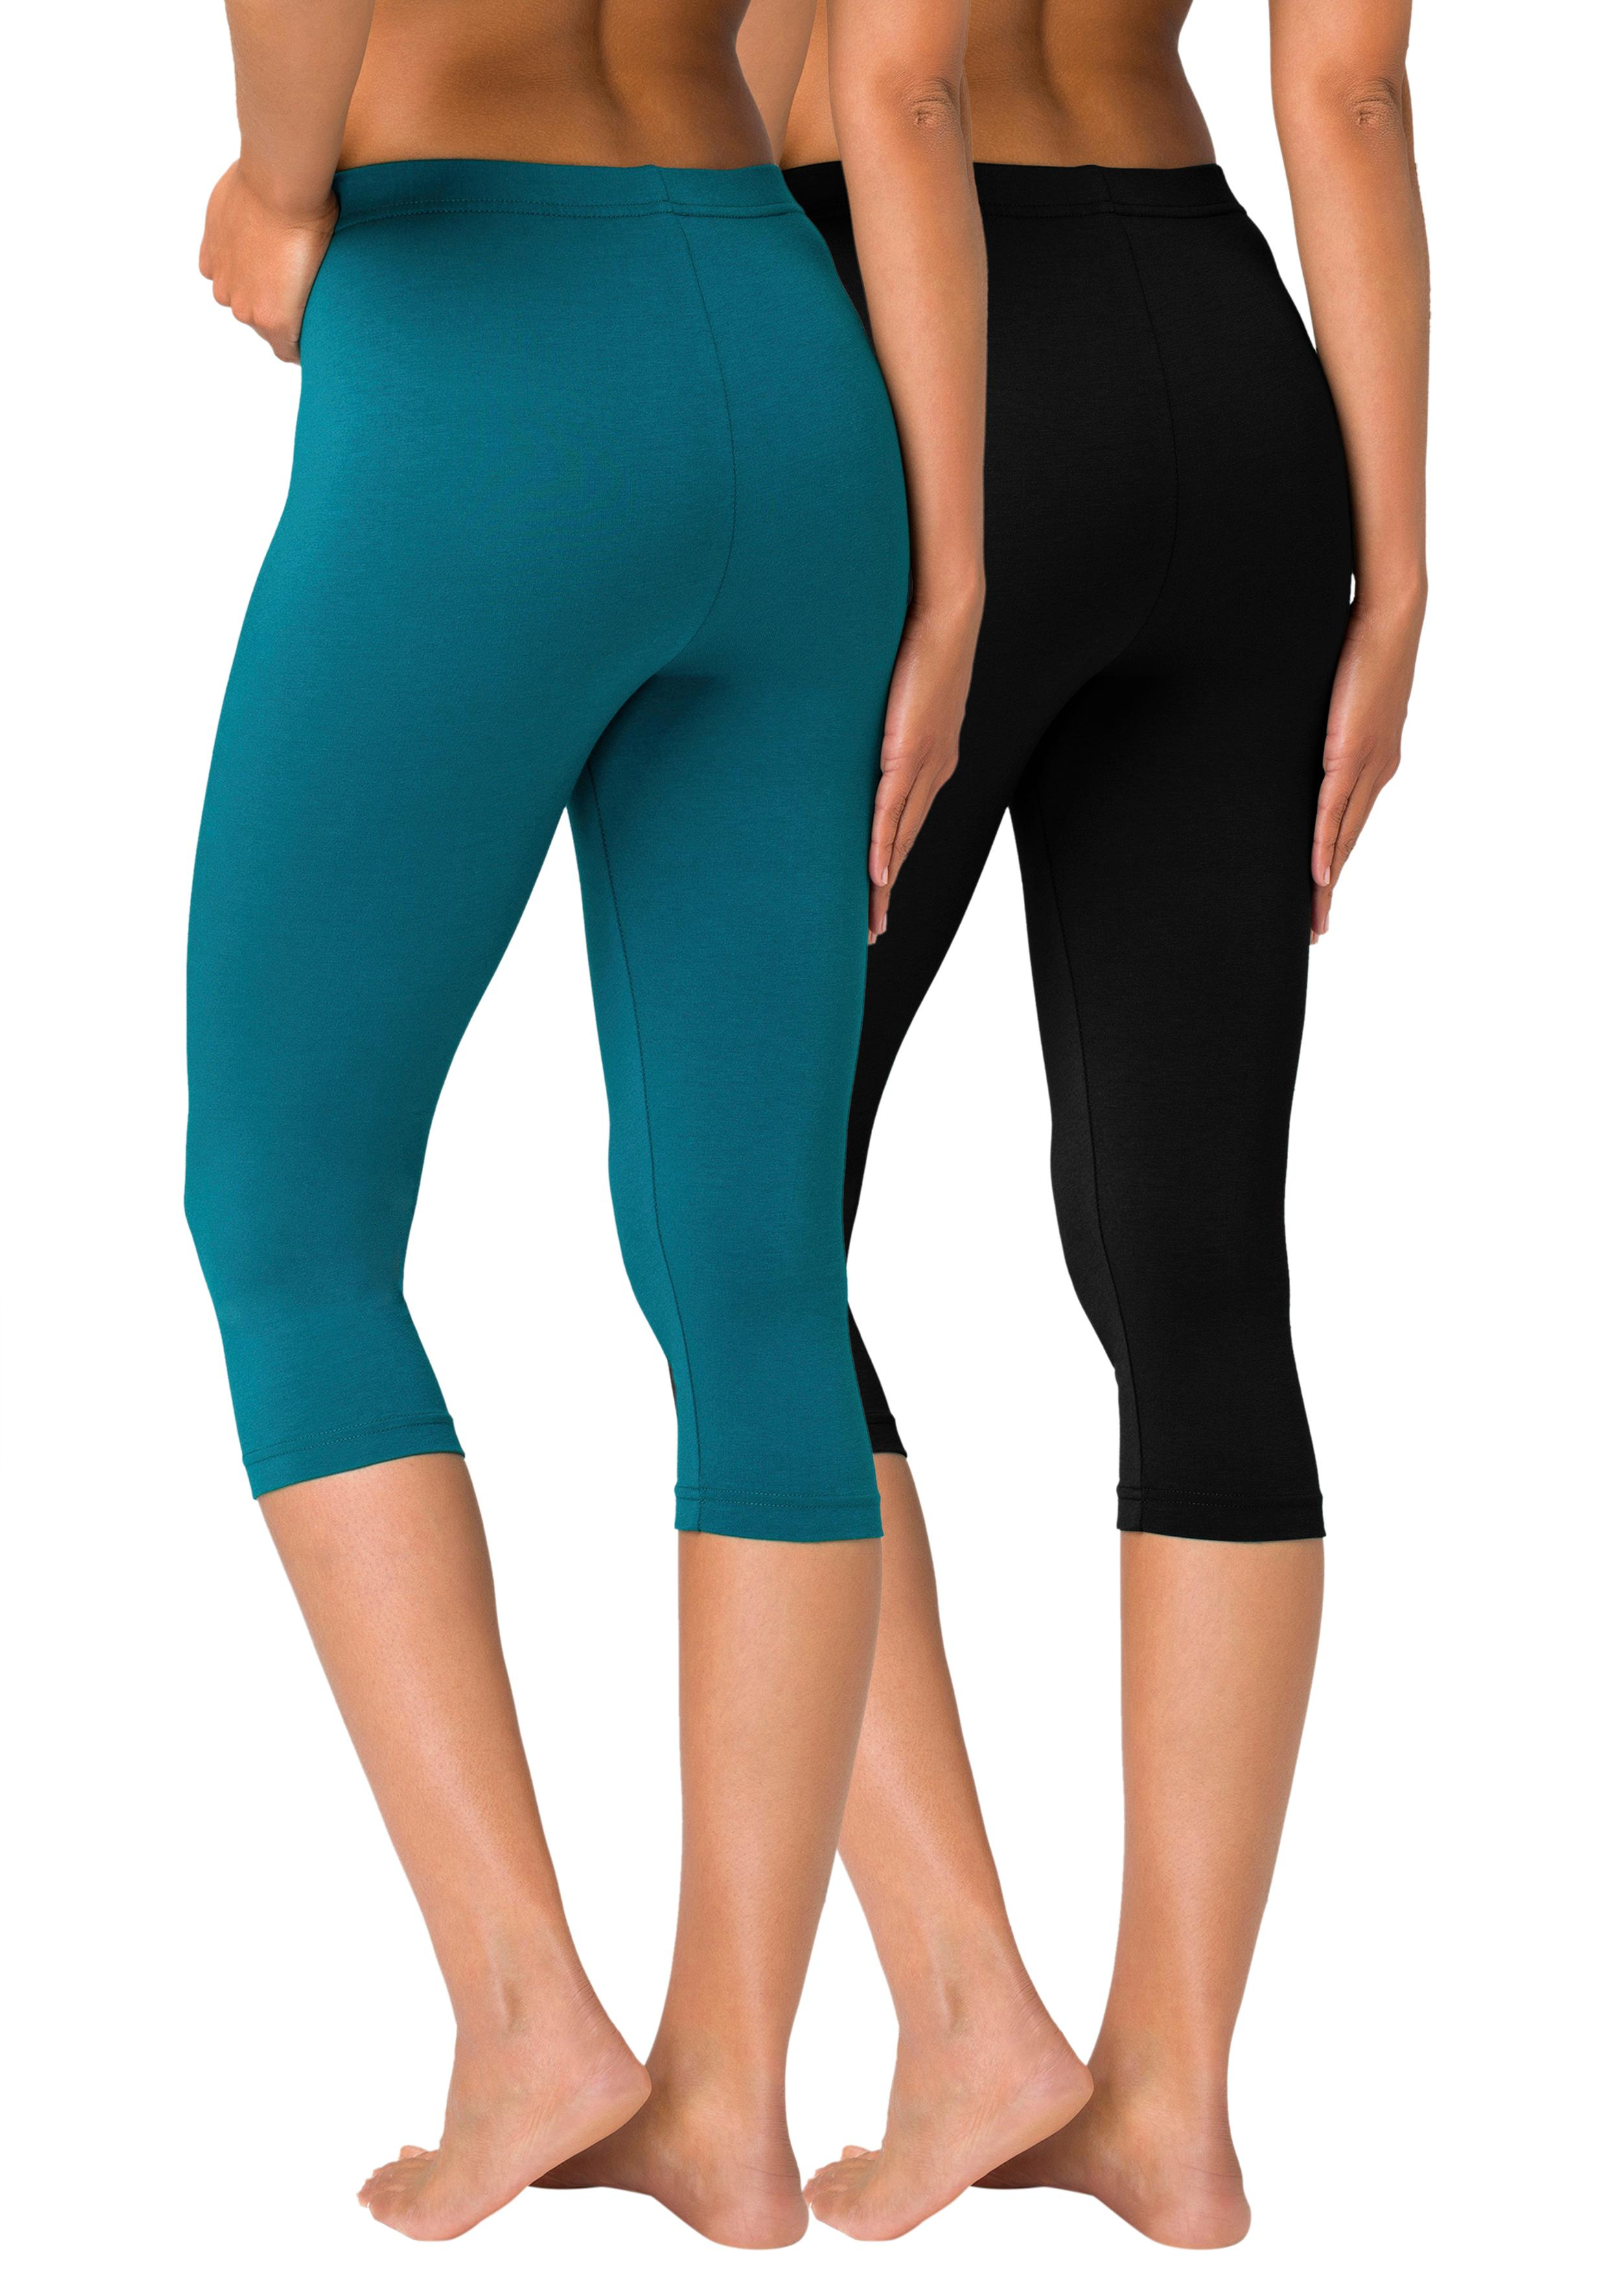 Vivance Caprileggings